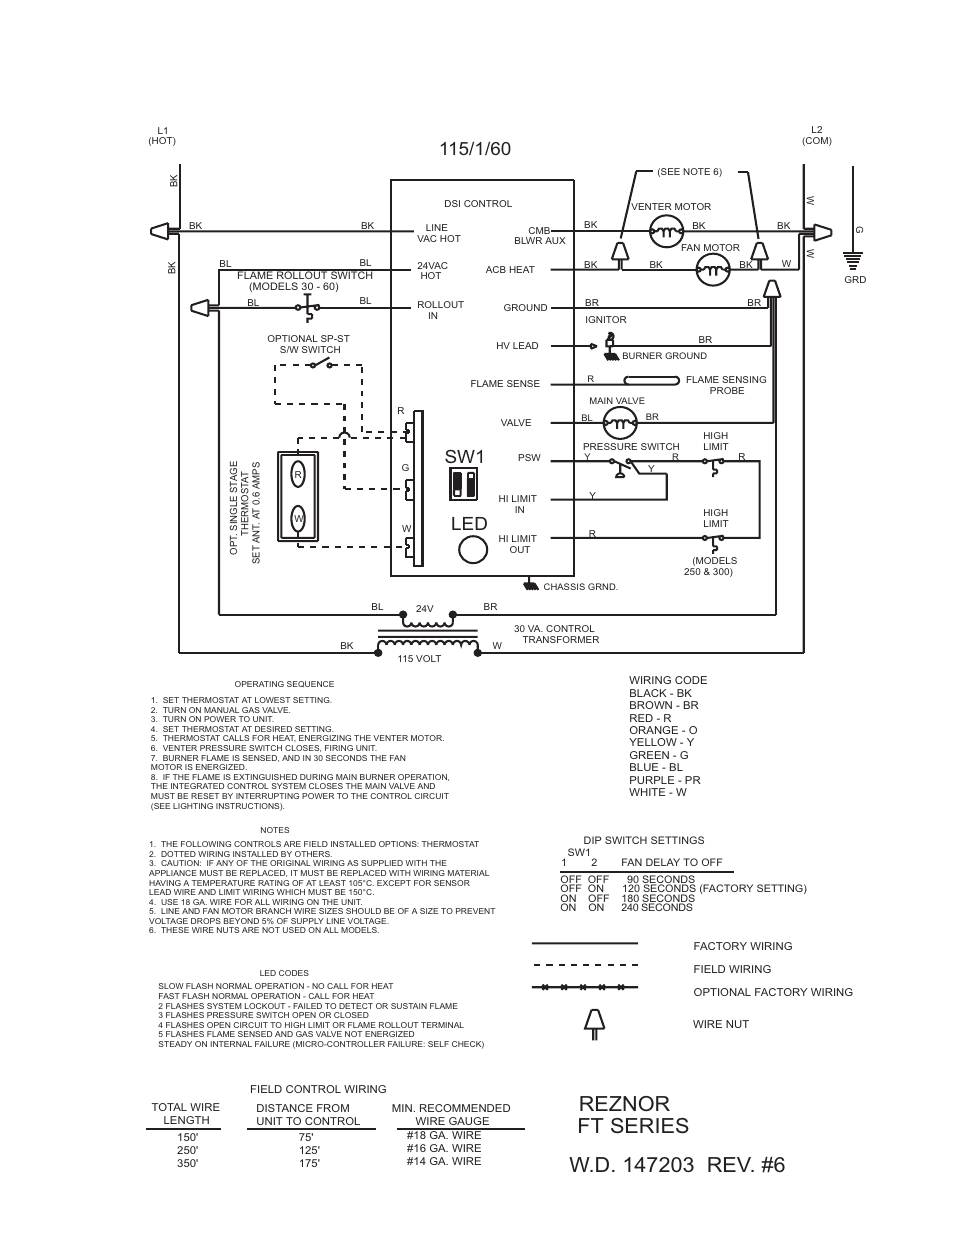 reznor ft unit installation manual page13?resize\\\=665%2C861 cr285b15 wiring diagram crate wiring diagrams collection  at readyjetset.co